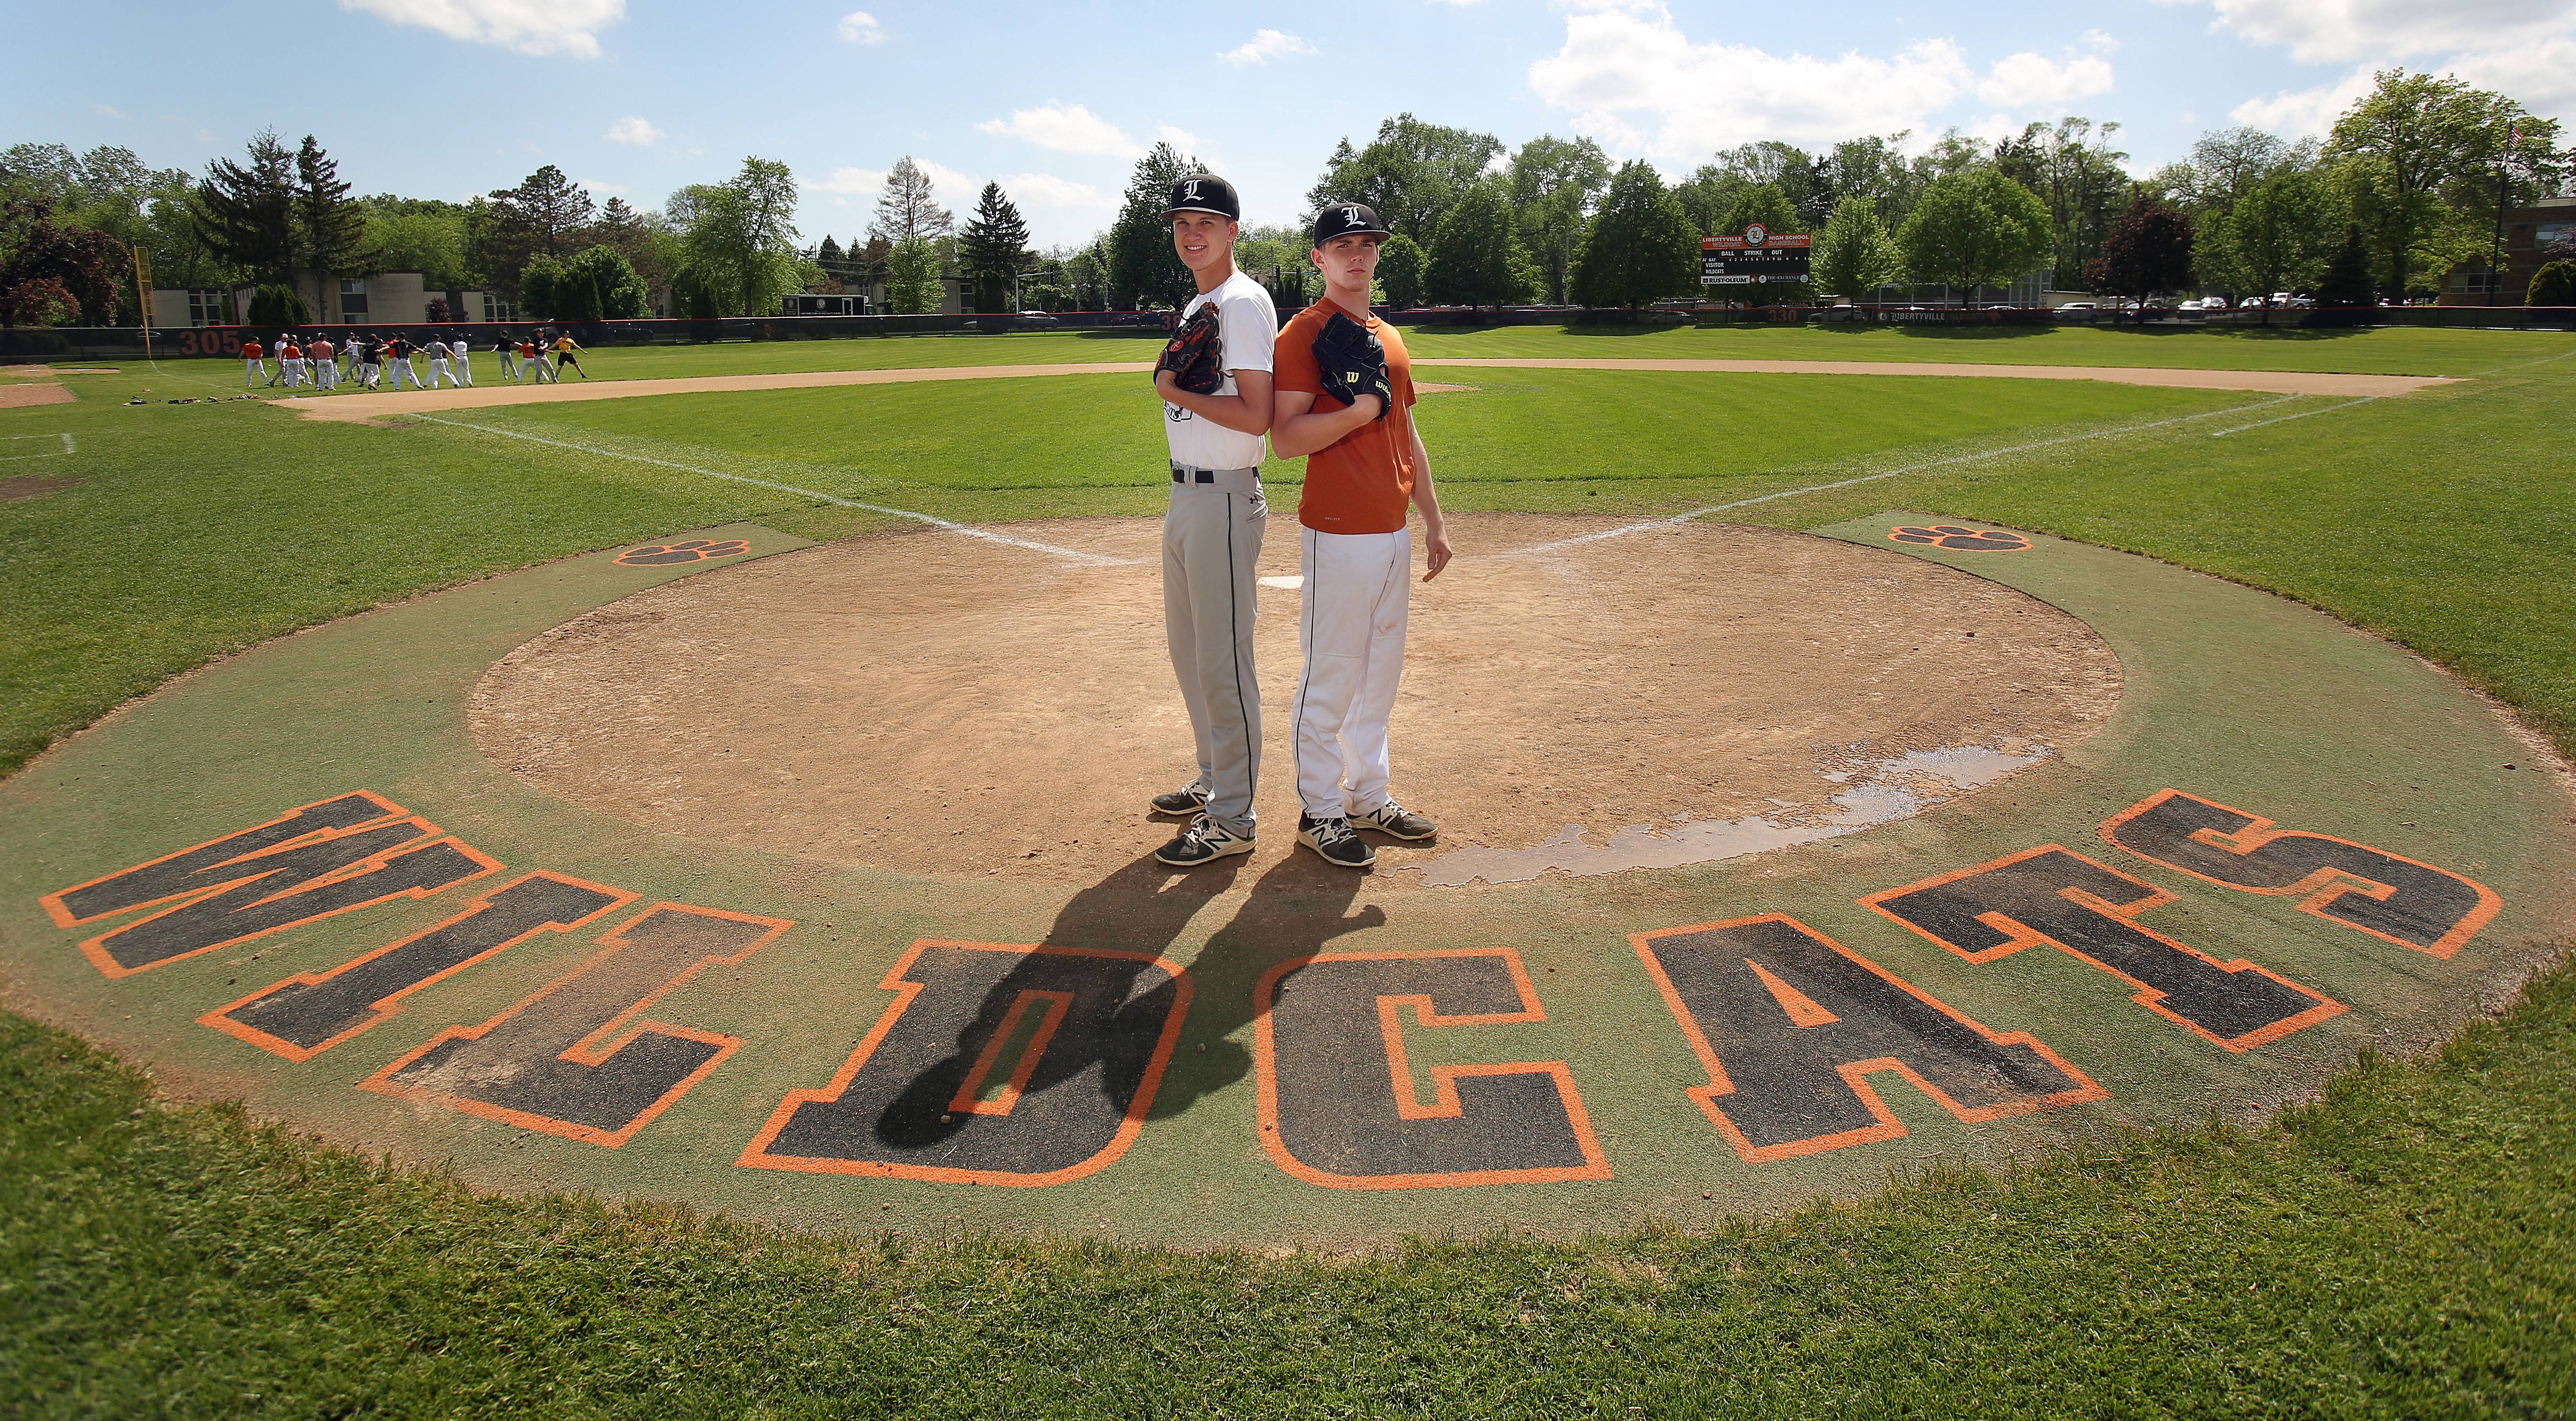 Libertyville senior pitchers Ben Land, left, and Caleb Haddon have helped Libertyville win the NSC title and are going to pitch at the same college next year, DePauw University.